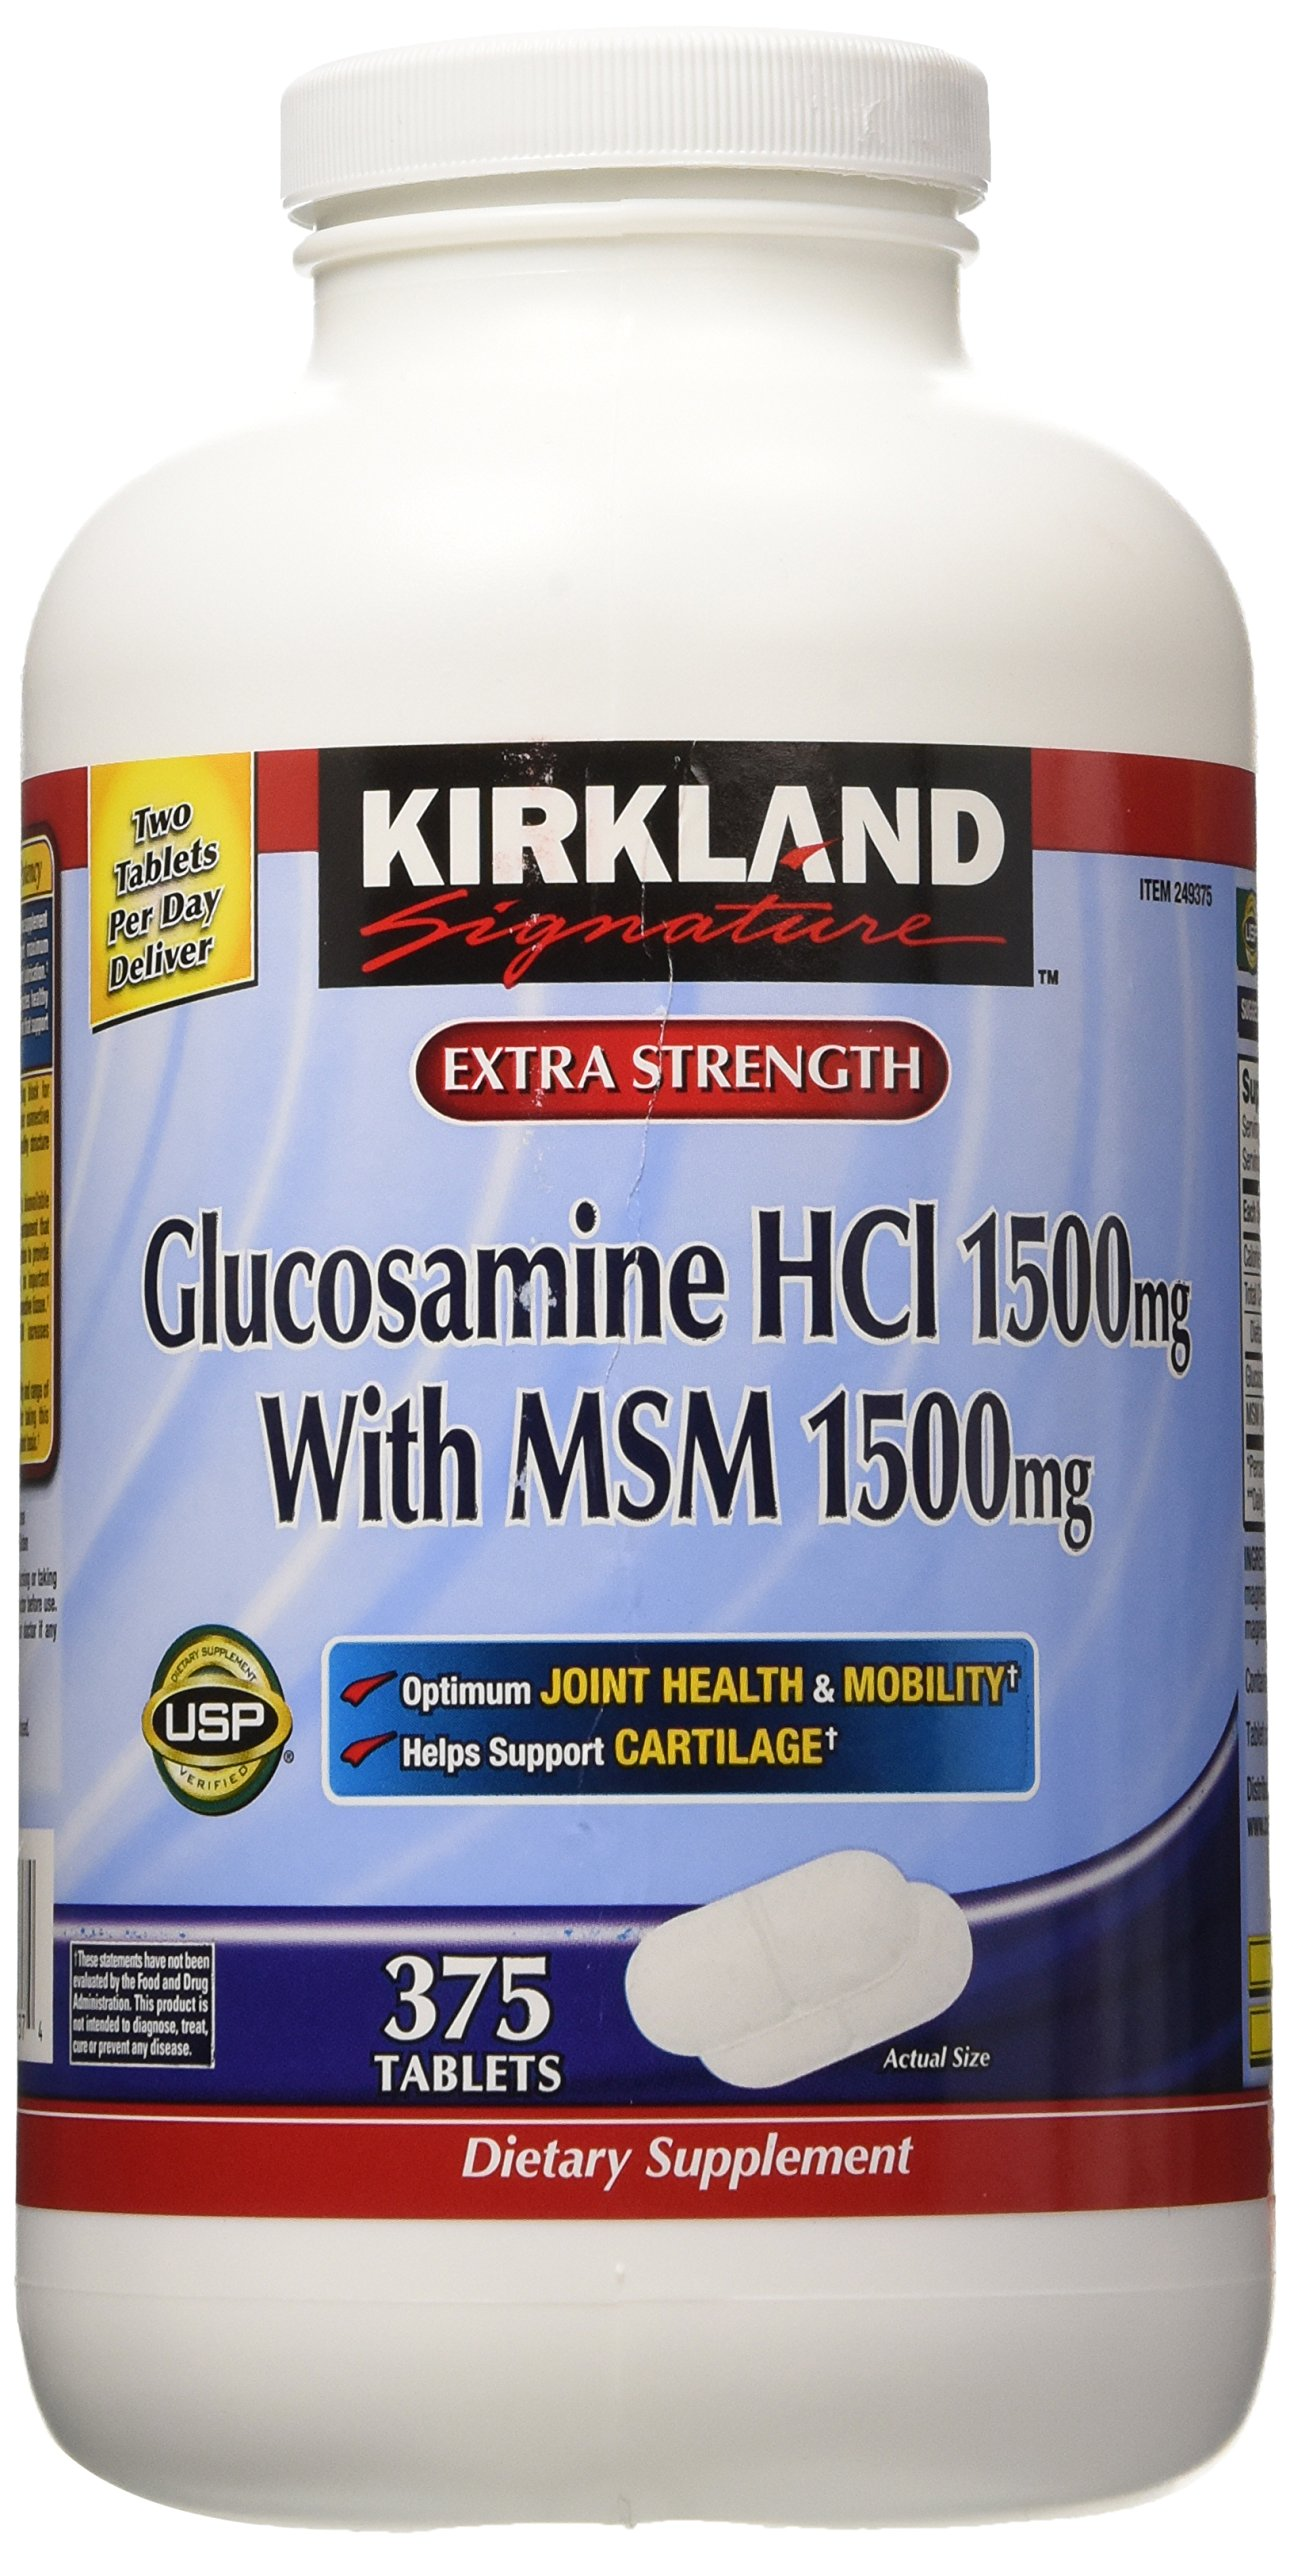 Kirkland Signature Extra Strength Glucosamine HCI 1500mg With MSM 1500 mg 375 Tablets (Pack of 2)